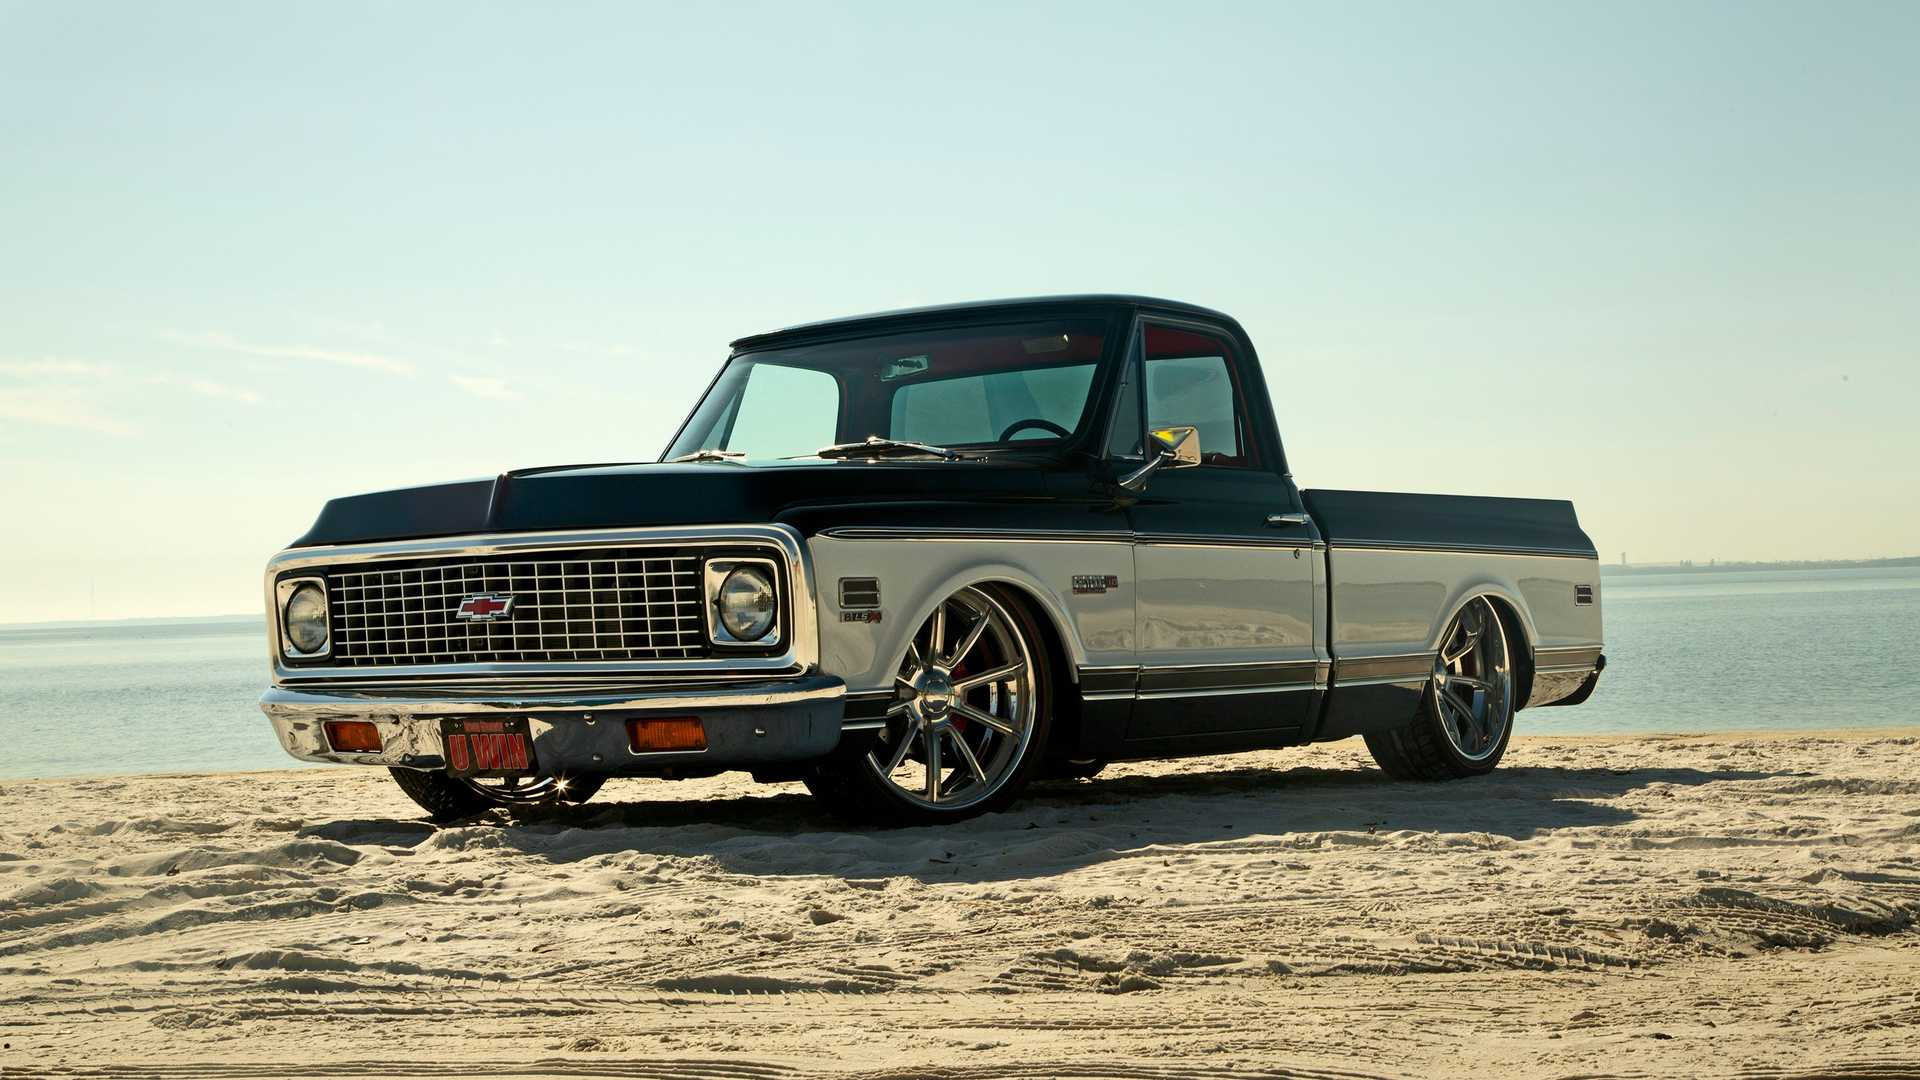 Last Chance For Double Bonus Entries To Win This Chevy C 10 Show